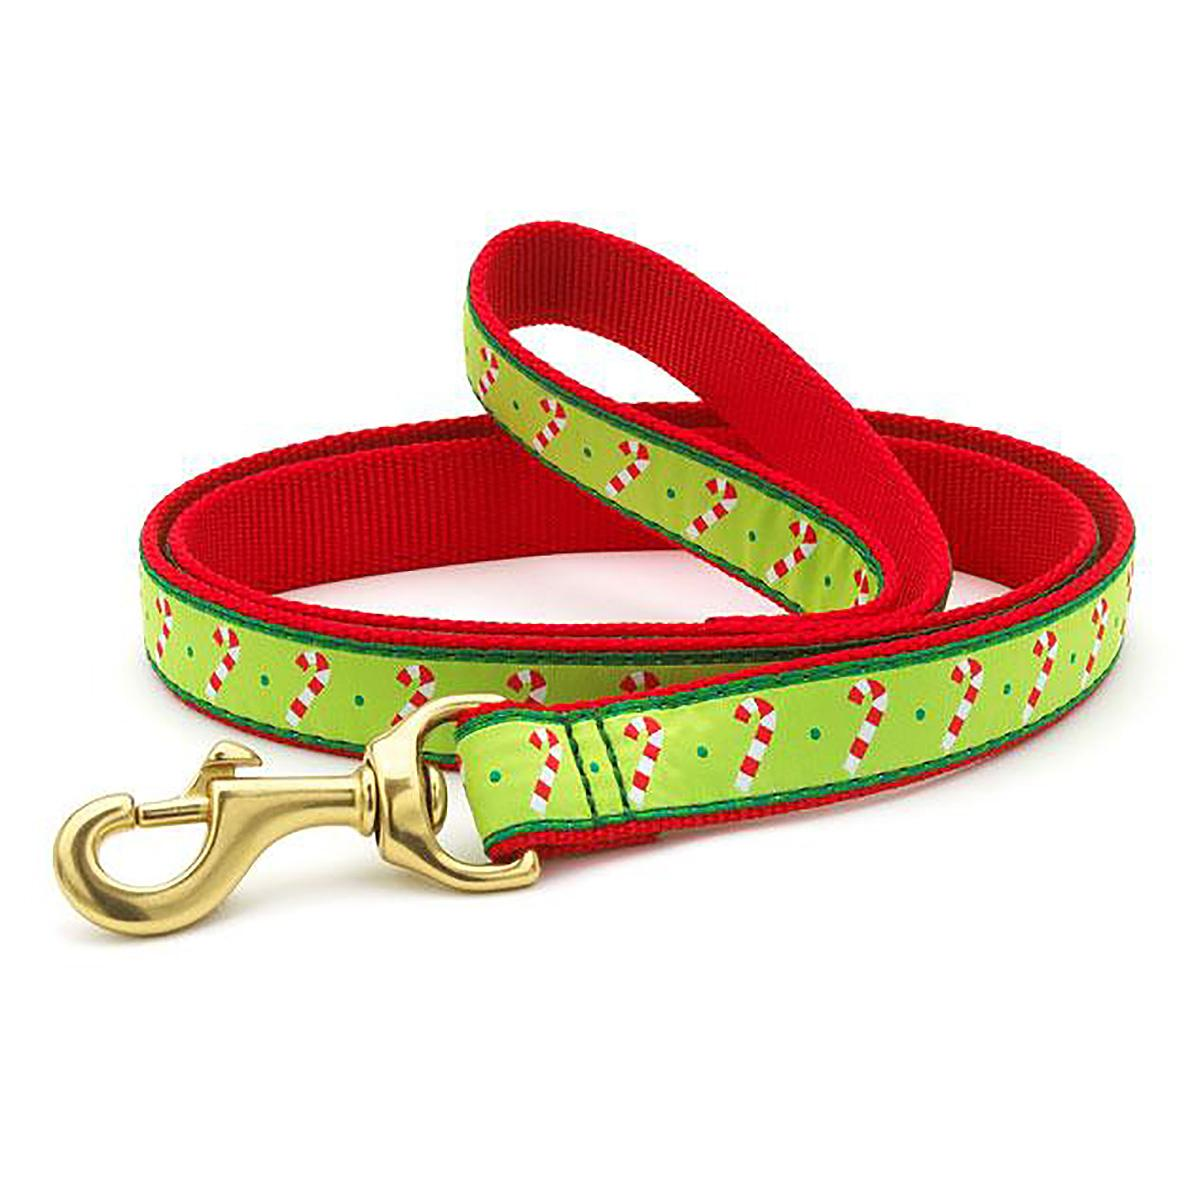 Candy Cane Dog Leash by Up Country